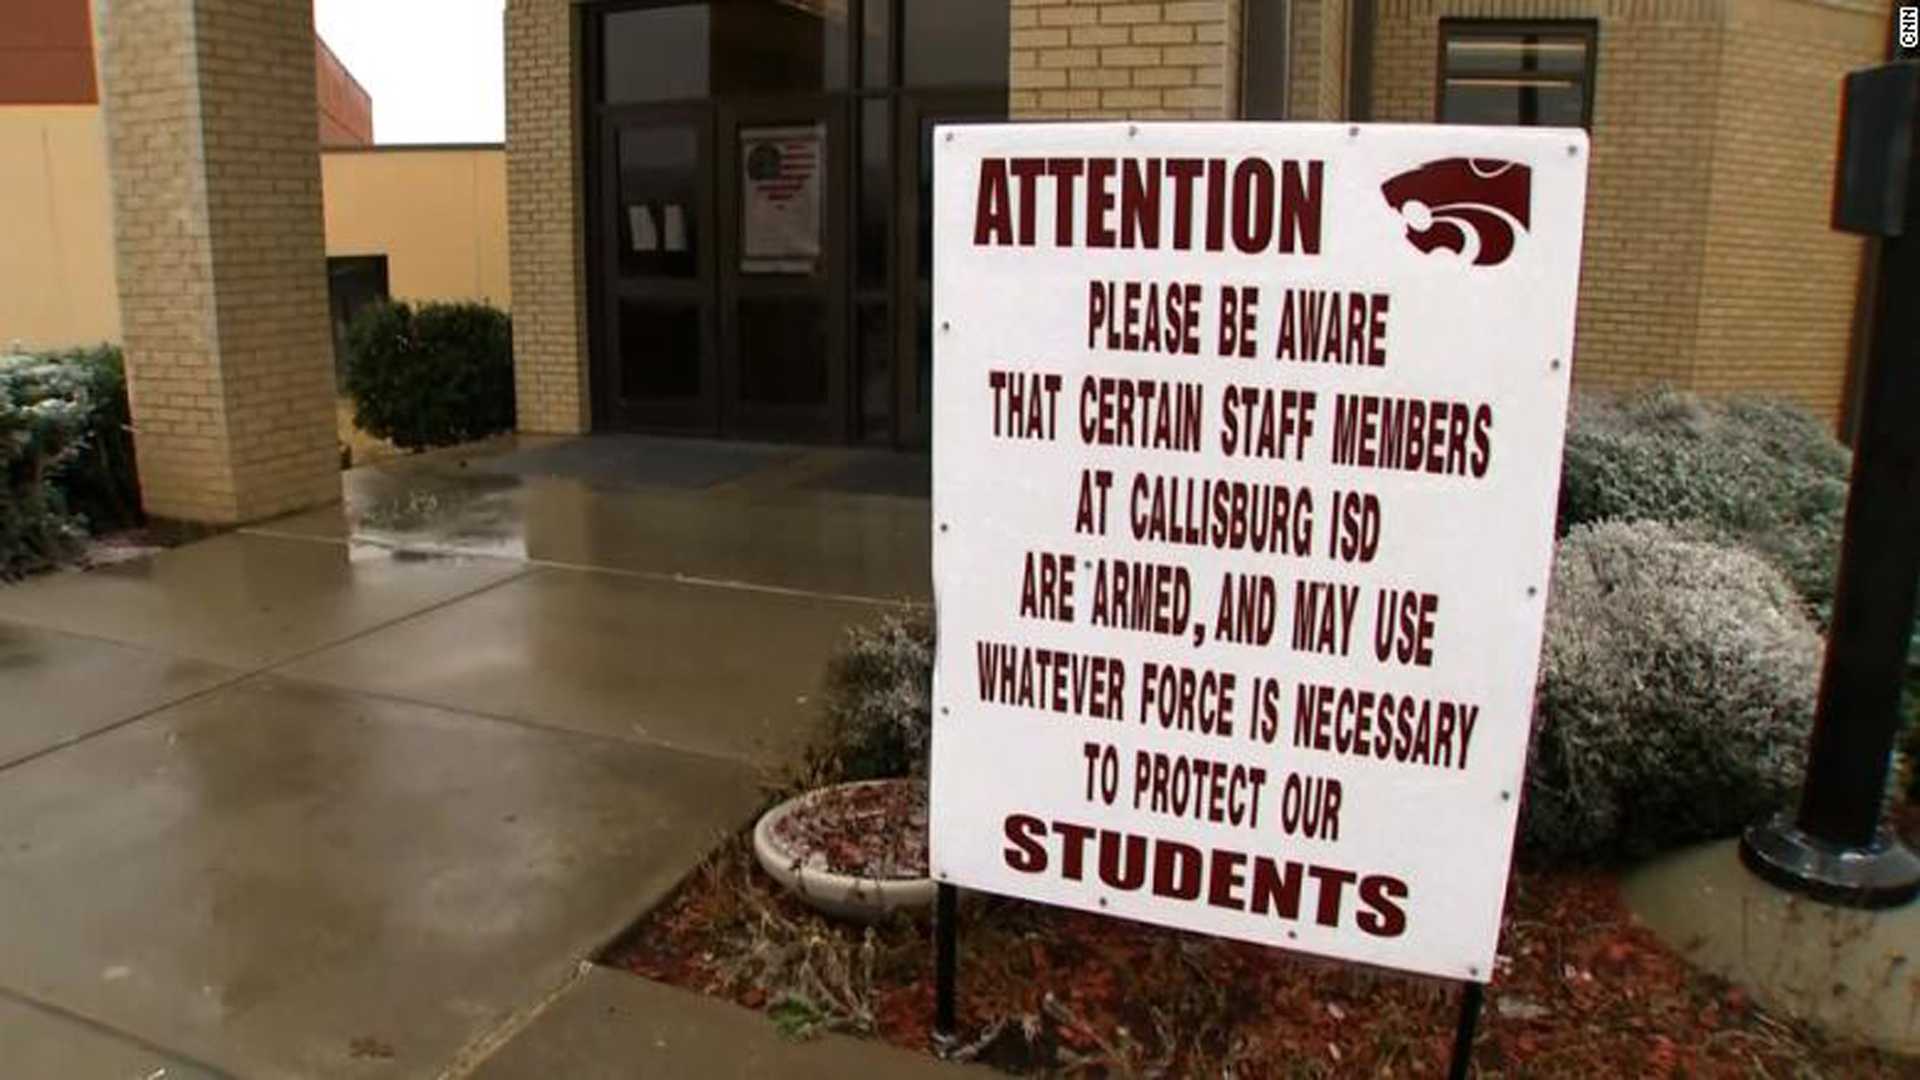 A sign warning visitors that some school staff are armed stands in front of a school entrance. (Credit: CNN)